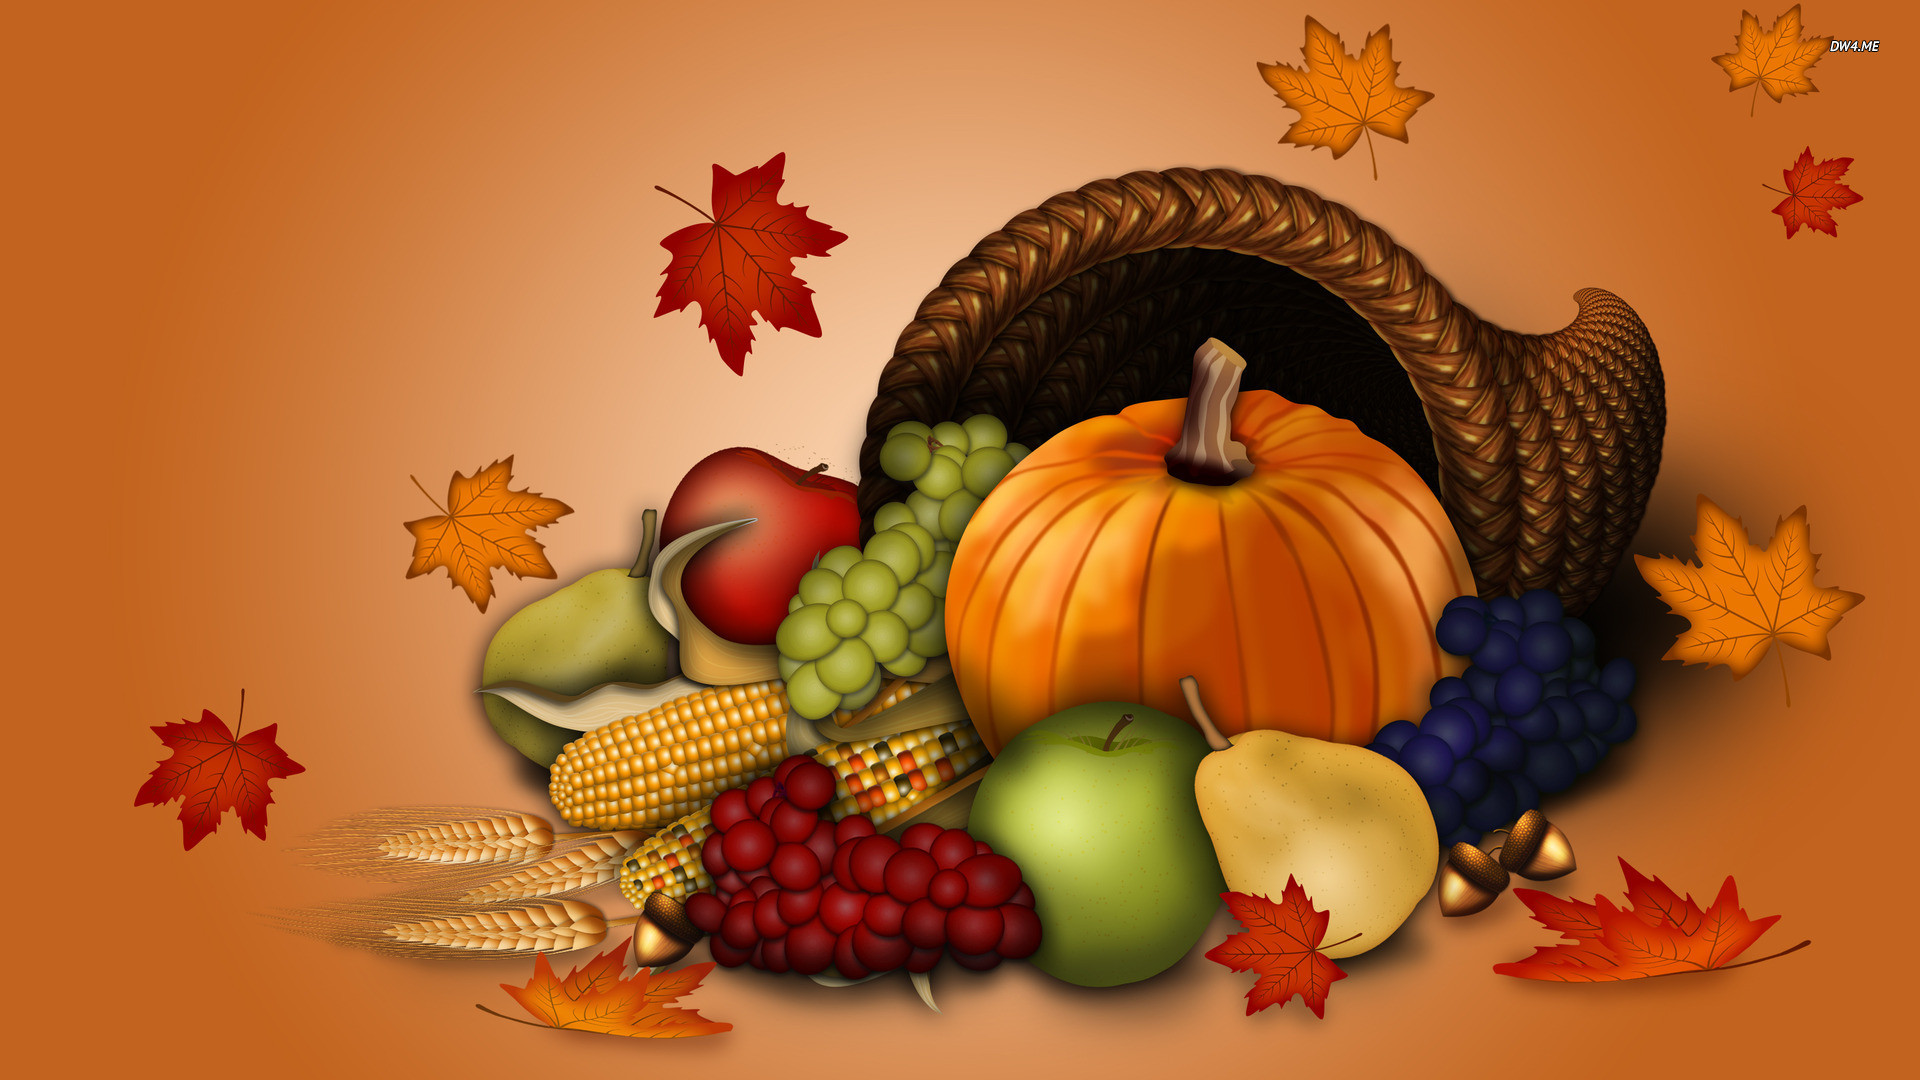 animation thanksgiving fruits backgrounds hd free #1710